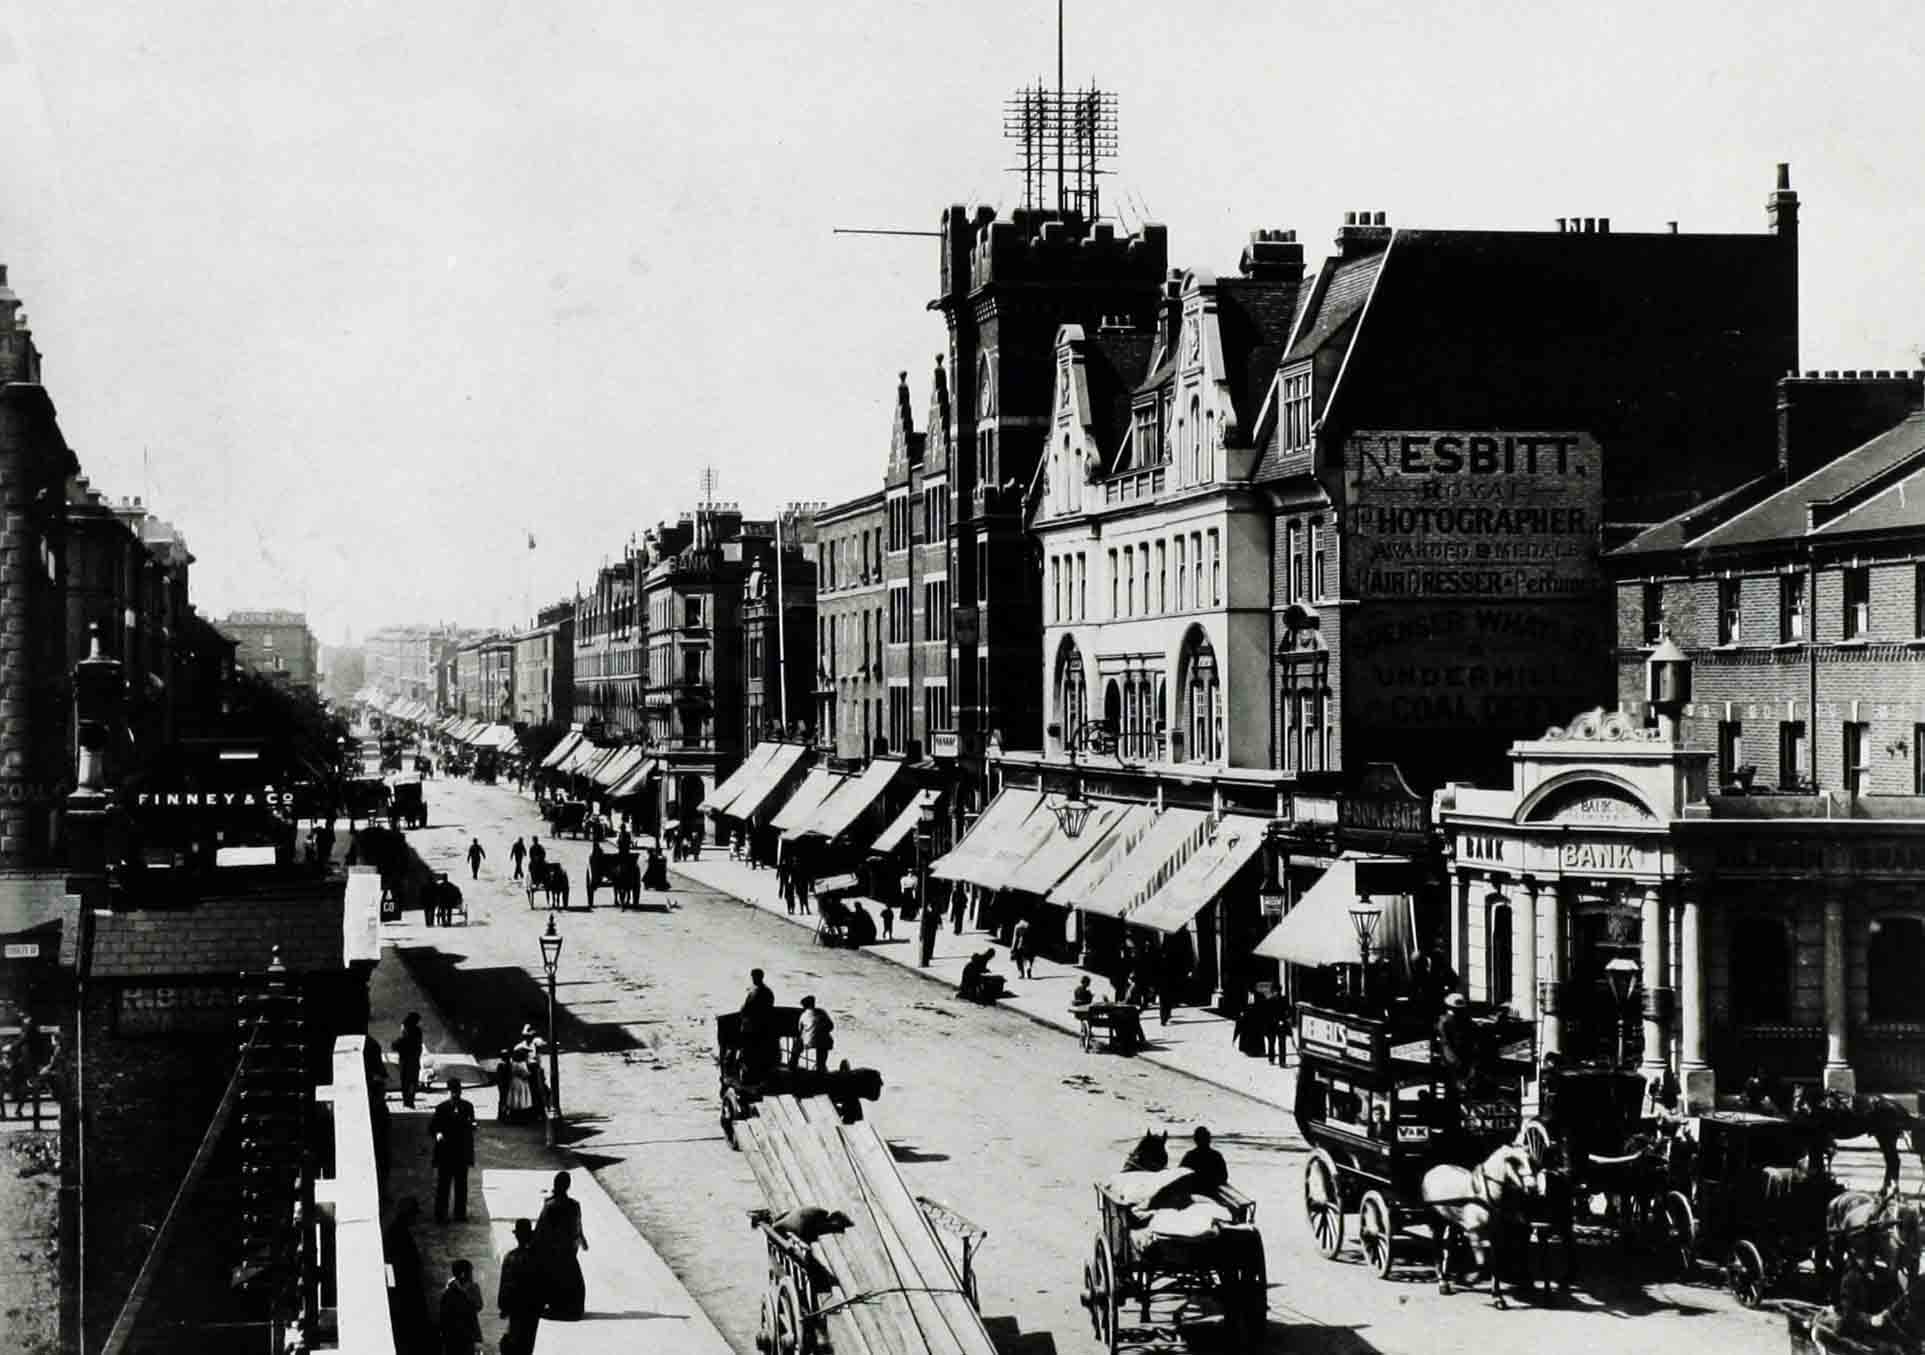 Kilburn High Road around 1890